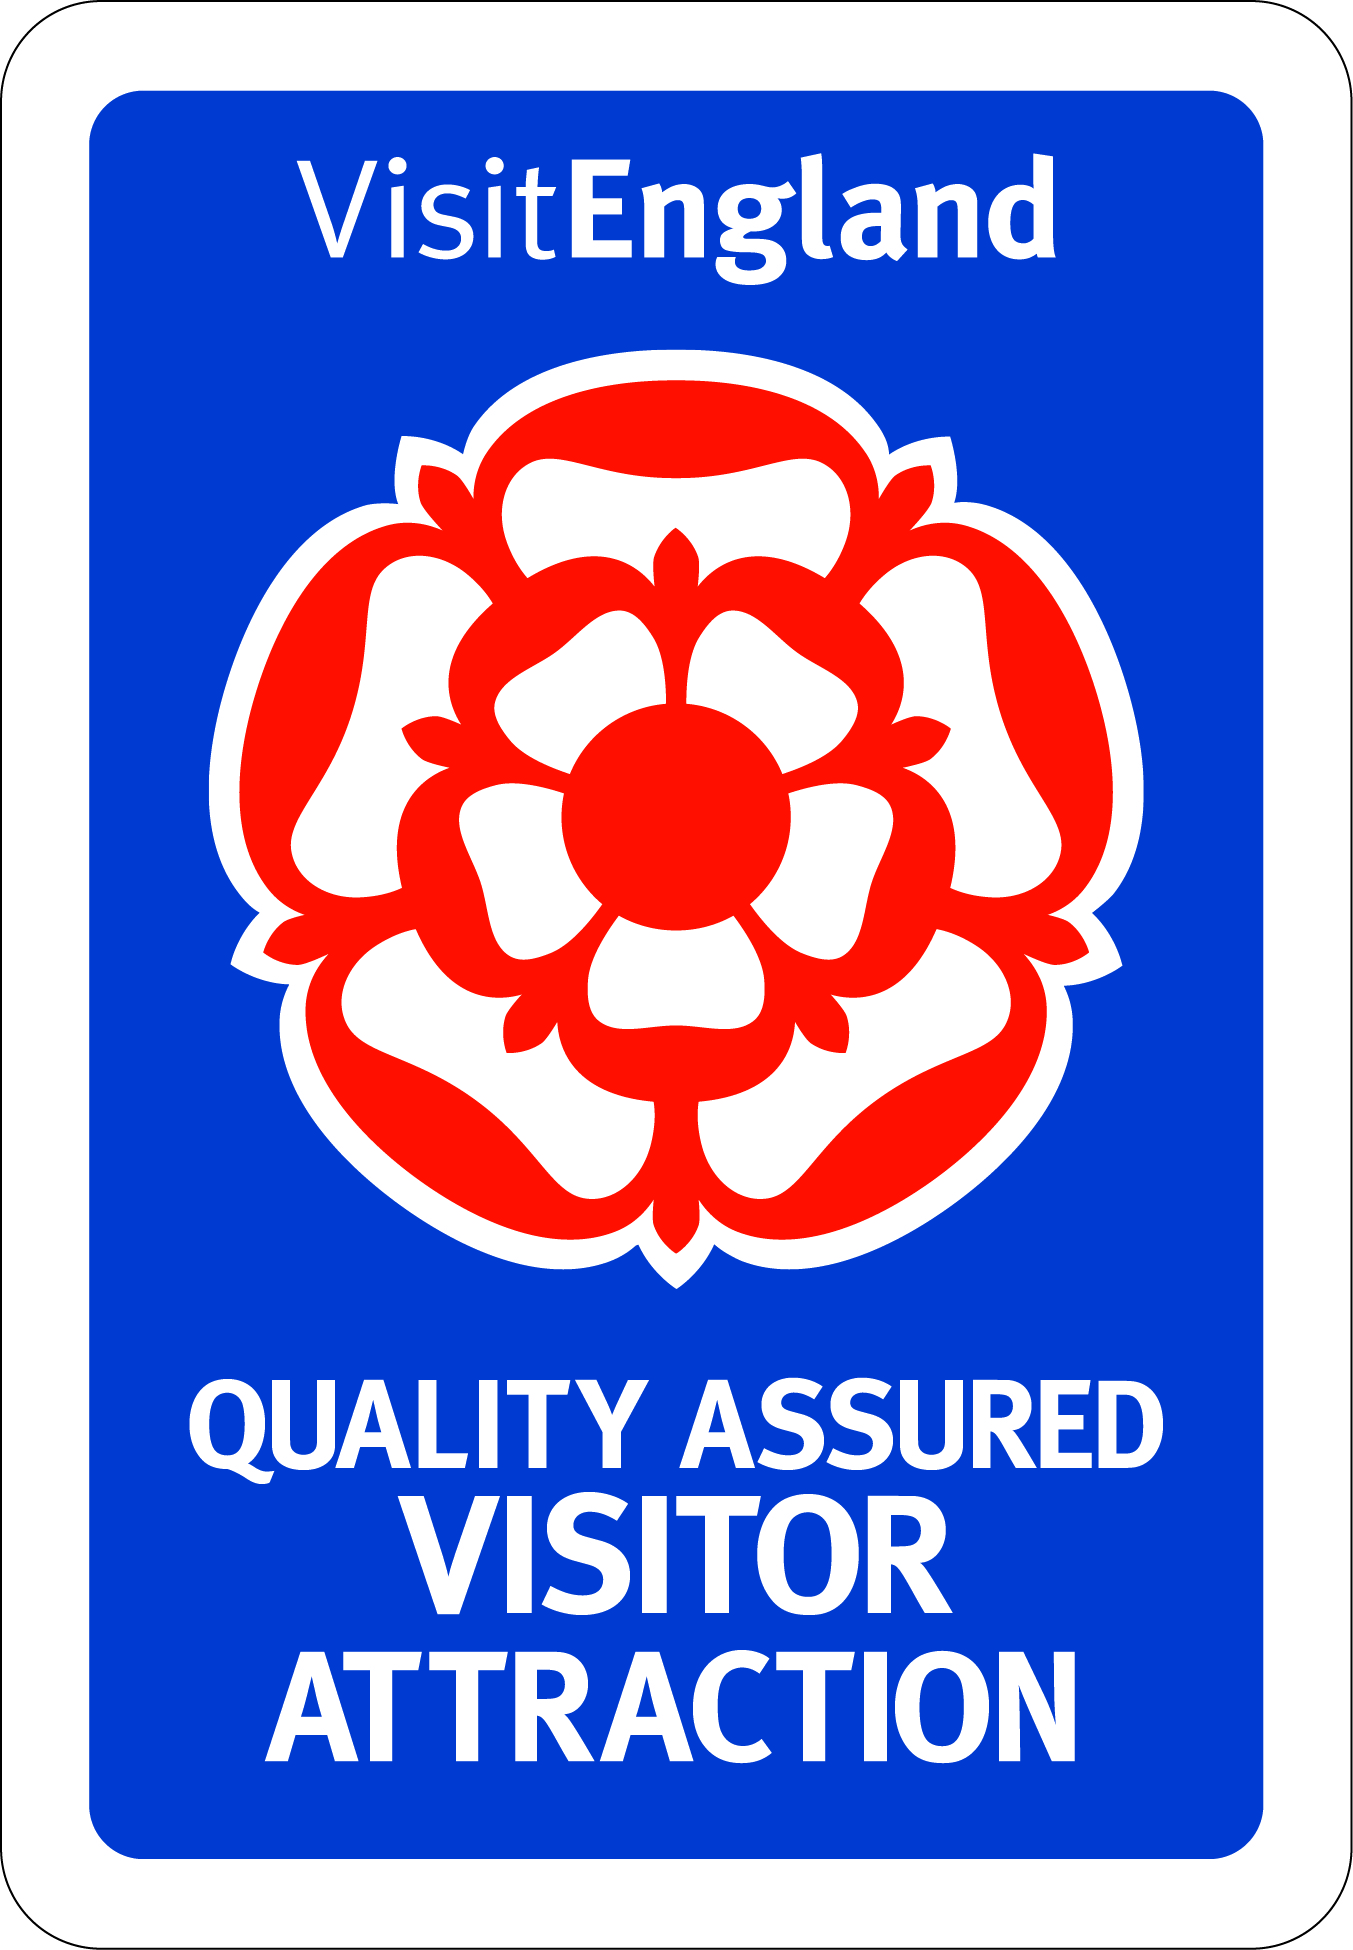 Visitor Attraction Quality Marque NEW 2017.jpg